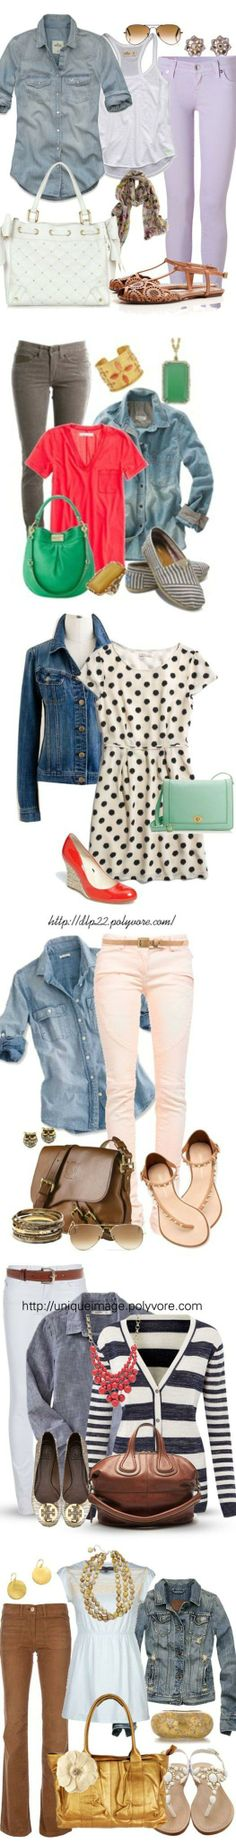 25 mix and match spring looks! #spring #fashion